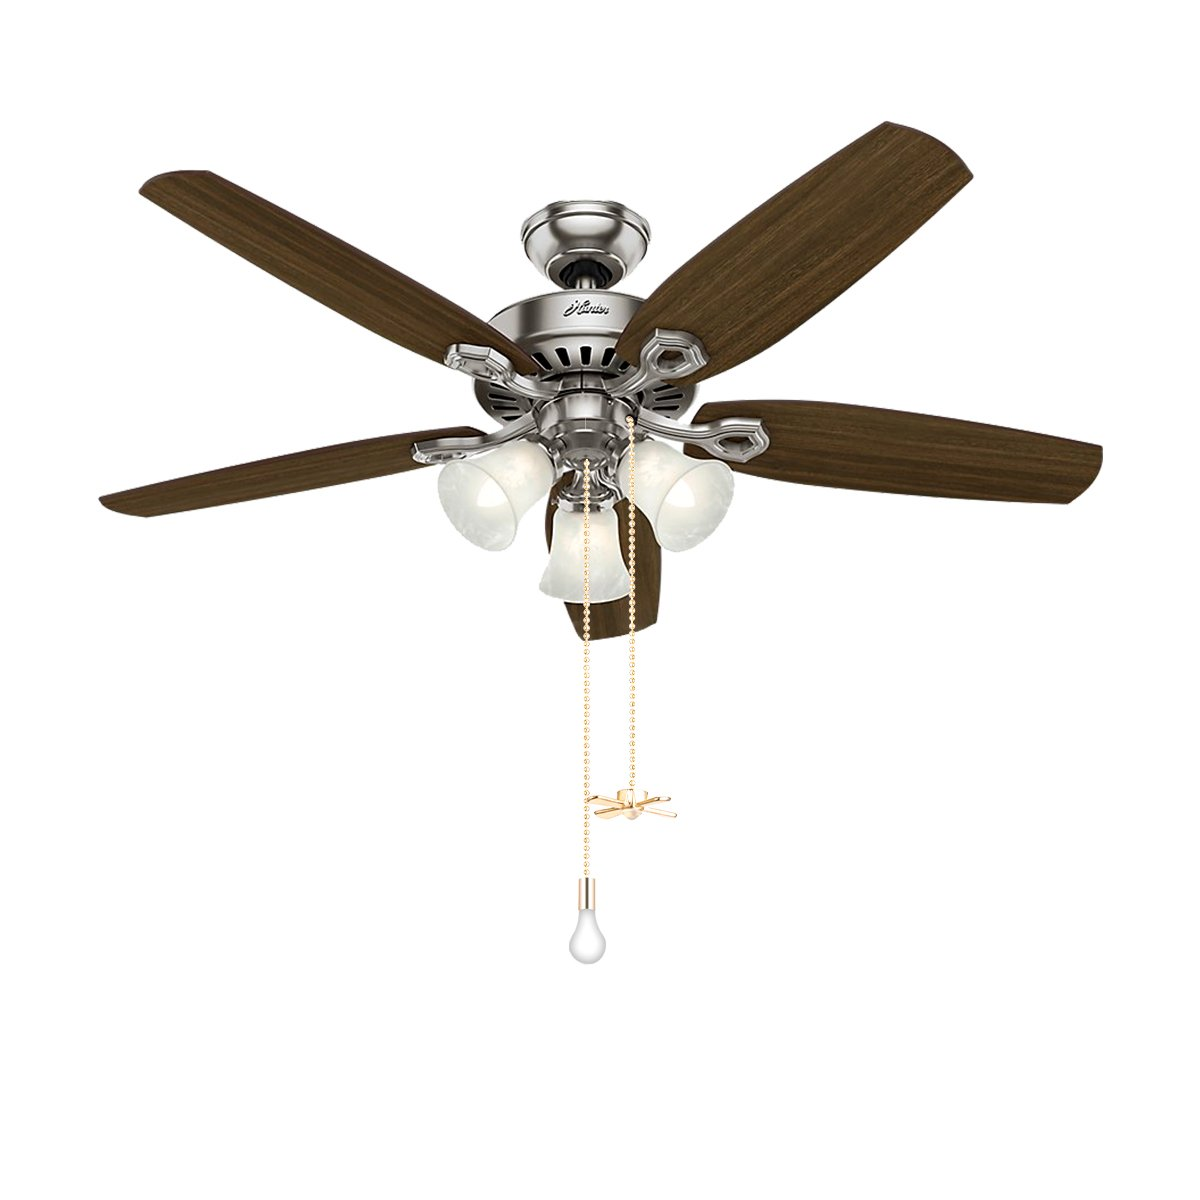 "Bronze Pull Chain Set, Sunix 11.8"" Ceiling Fan Pull Chain Included 35.4"" Diameter 3.2 mm Beaded Extensions with 4 Connectors, Golden, One Pair by Sunix (Image #2)"